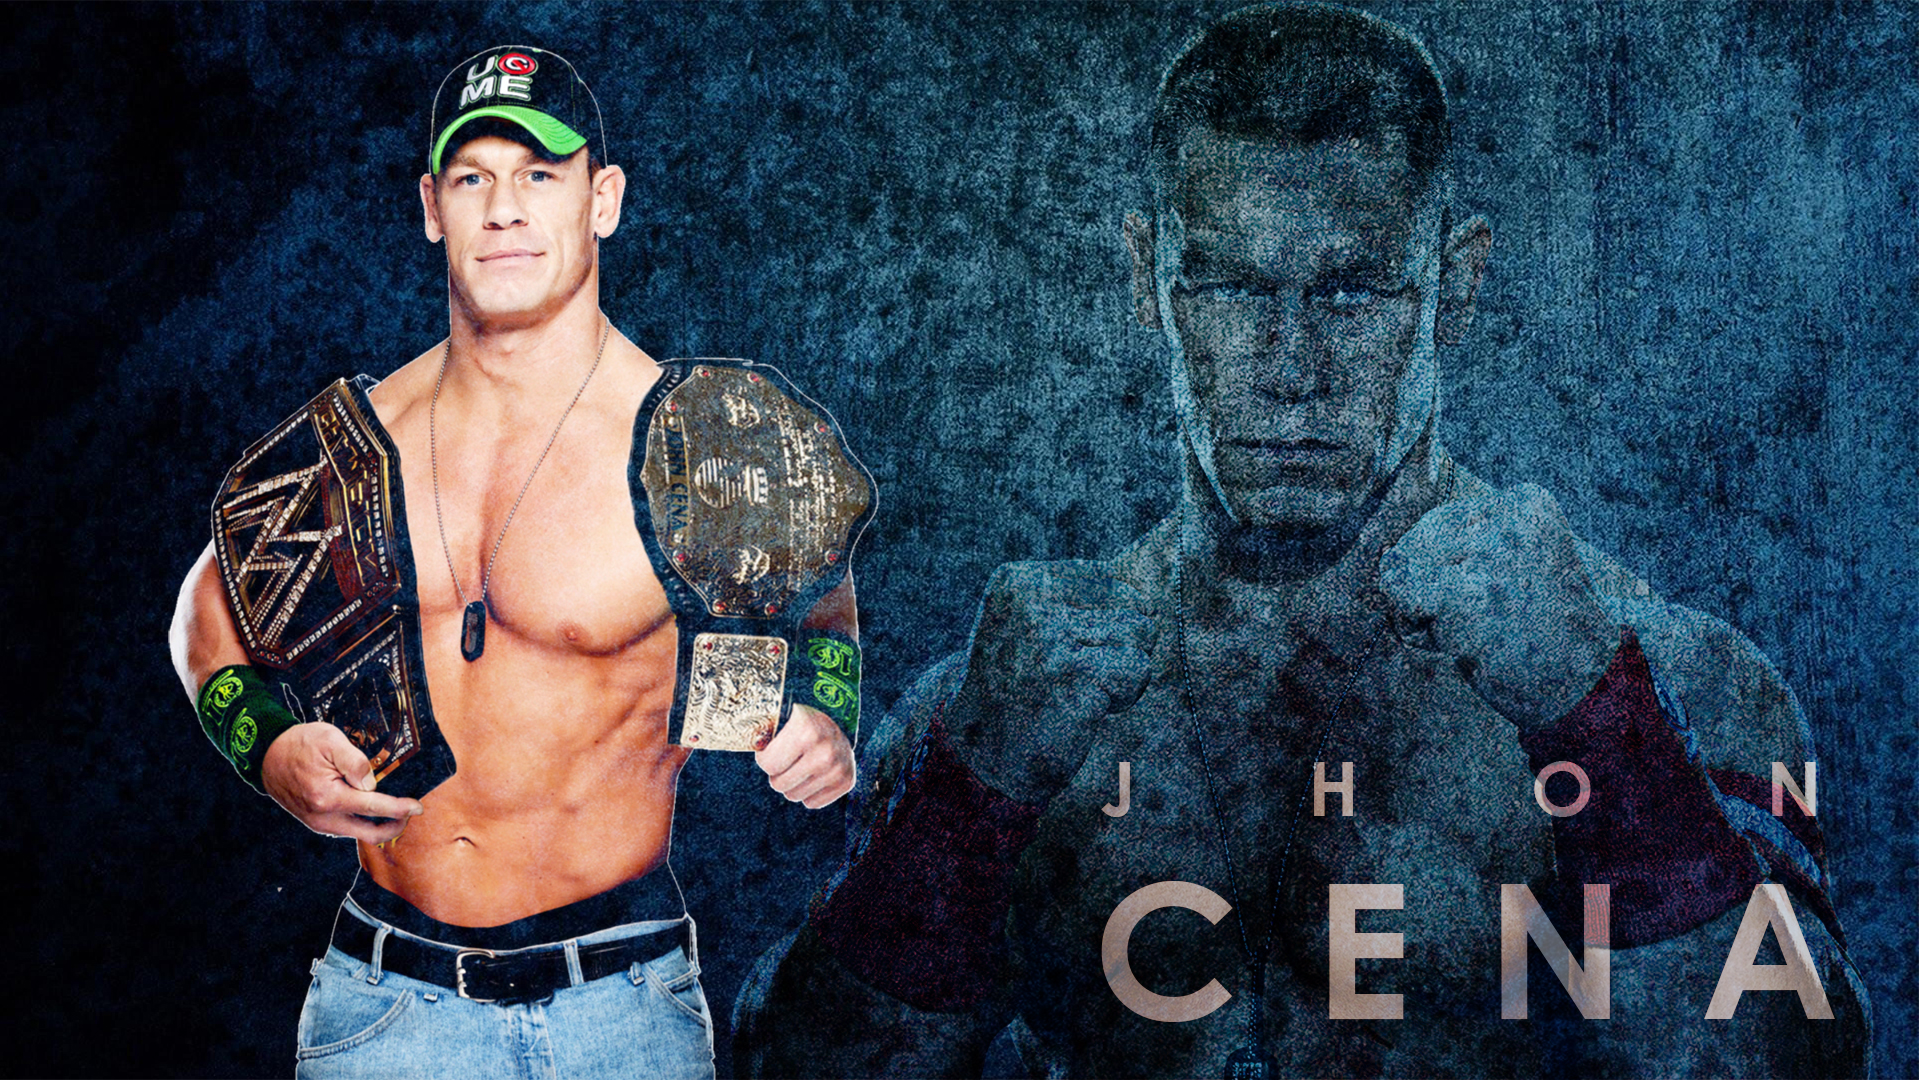 john cena wallpapers: 10 must downloads